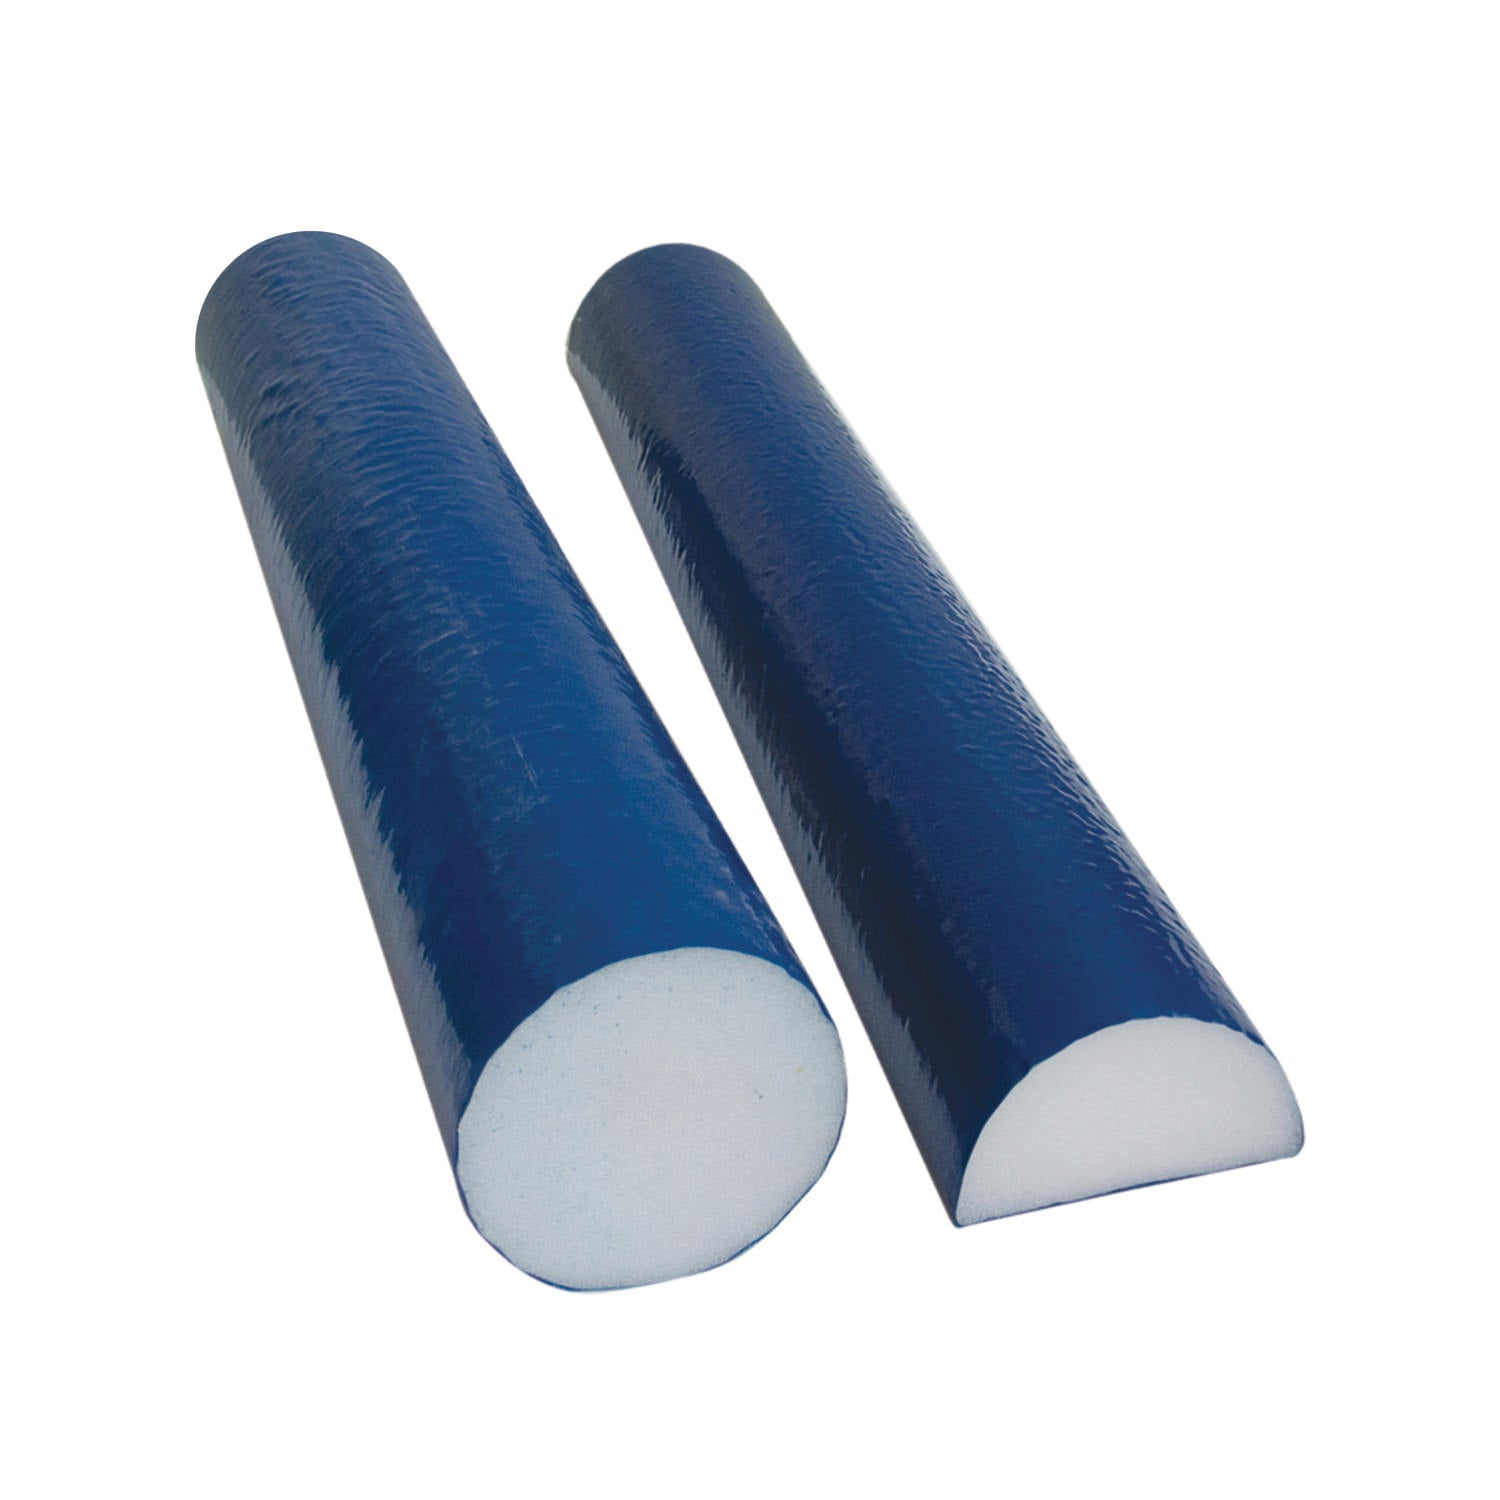 CanDo® Foam Roller - PE Foam, Blue TufCoat™ Finish